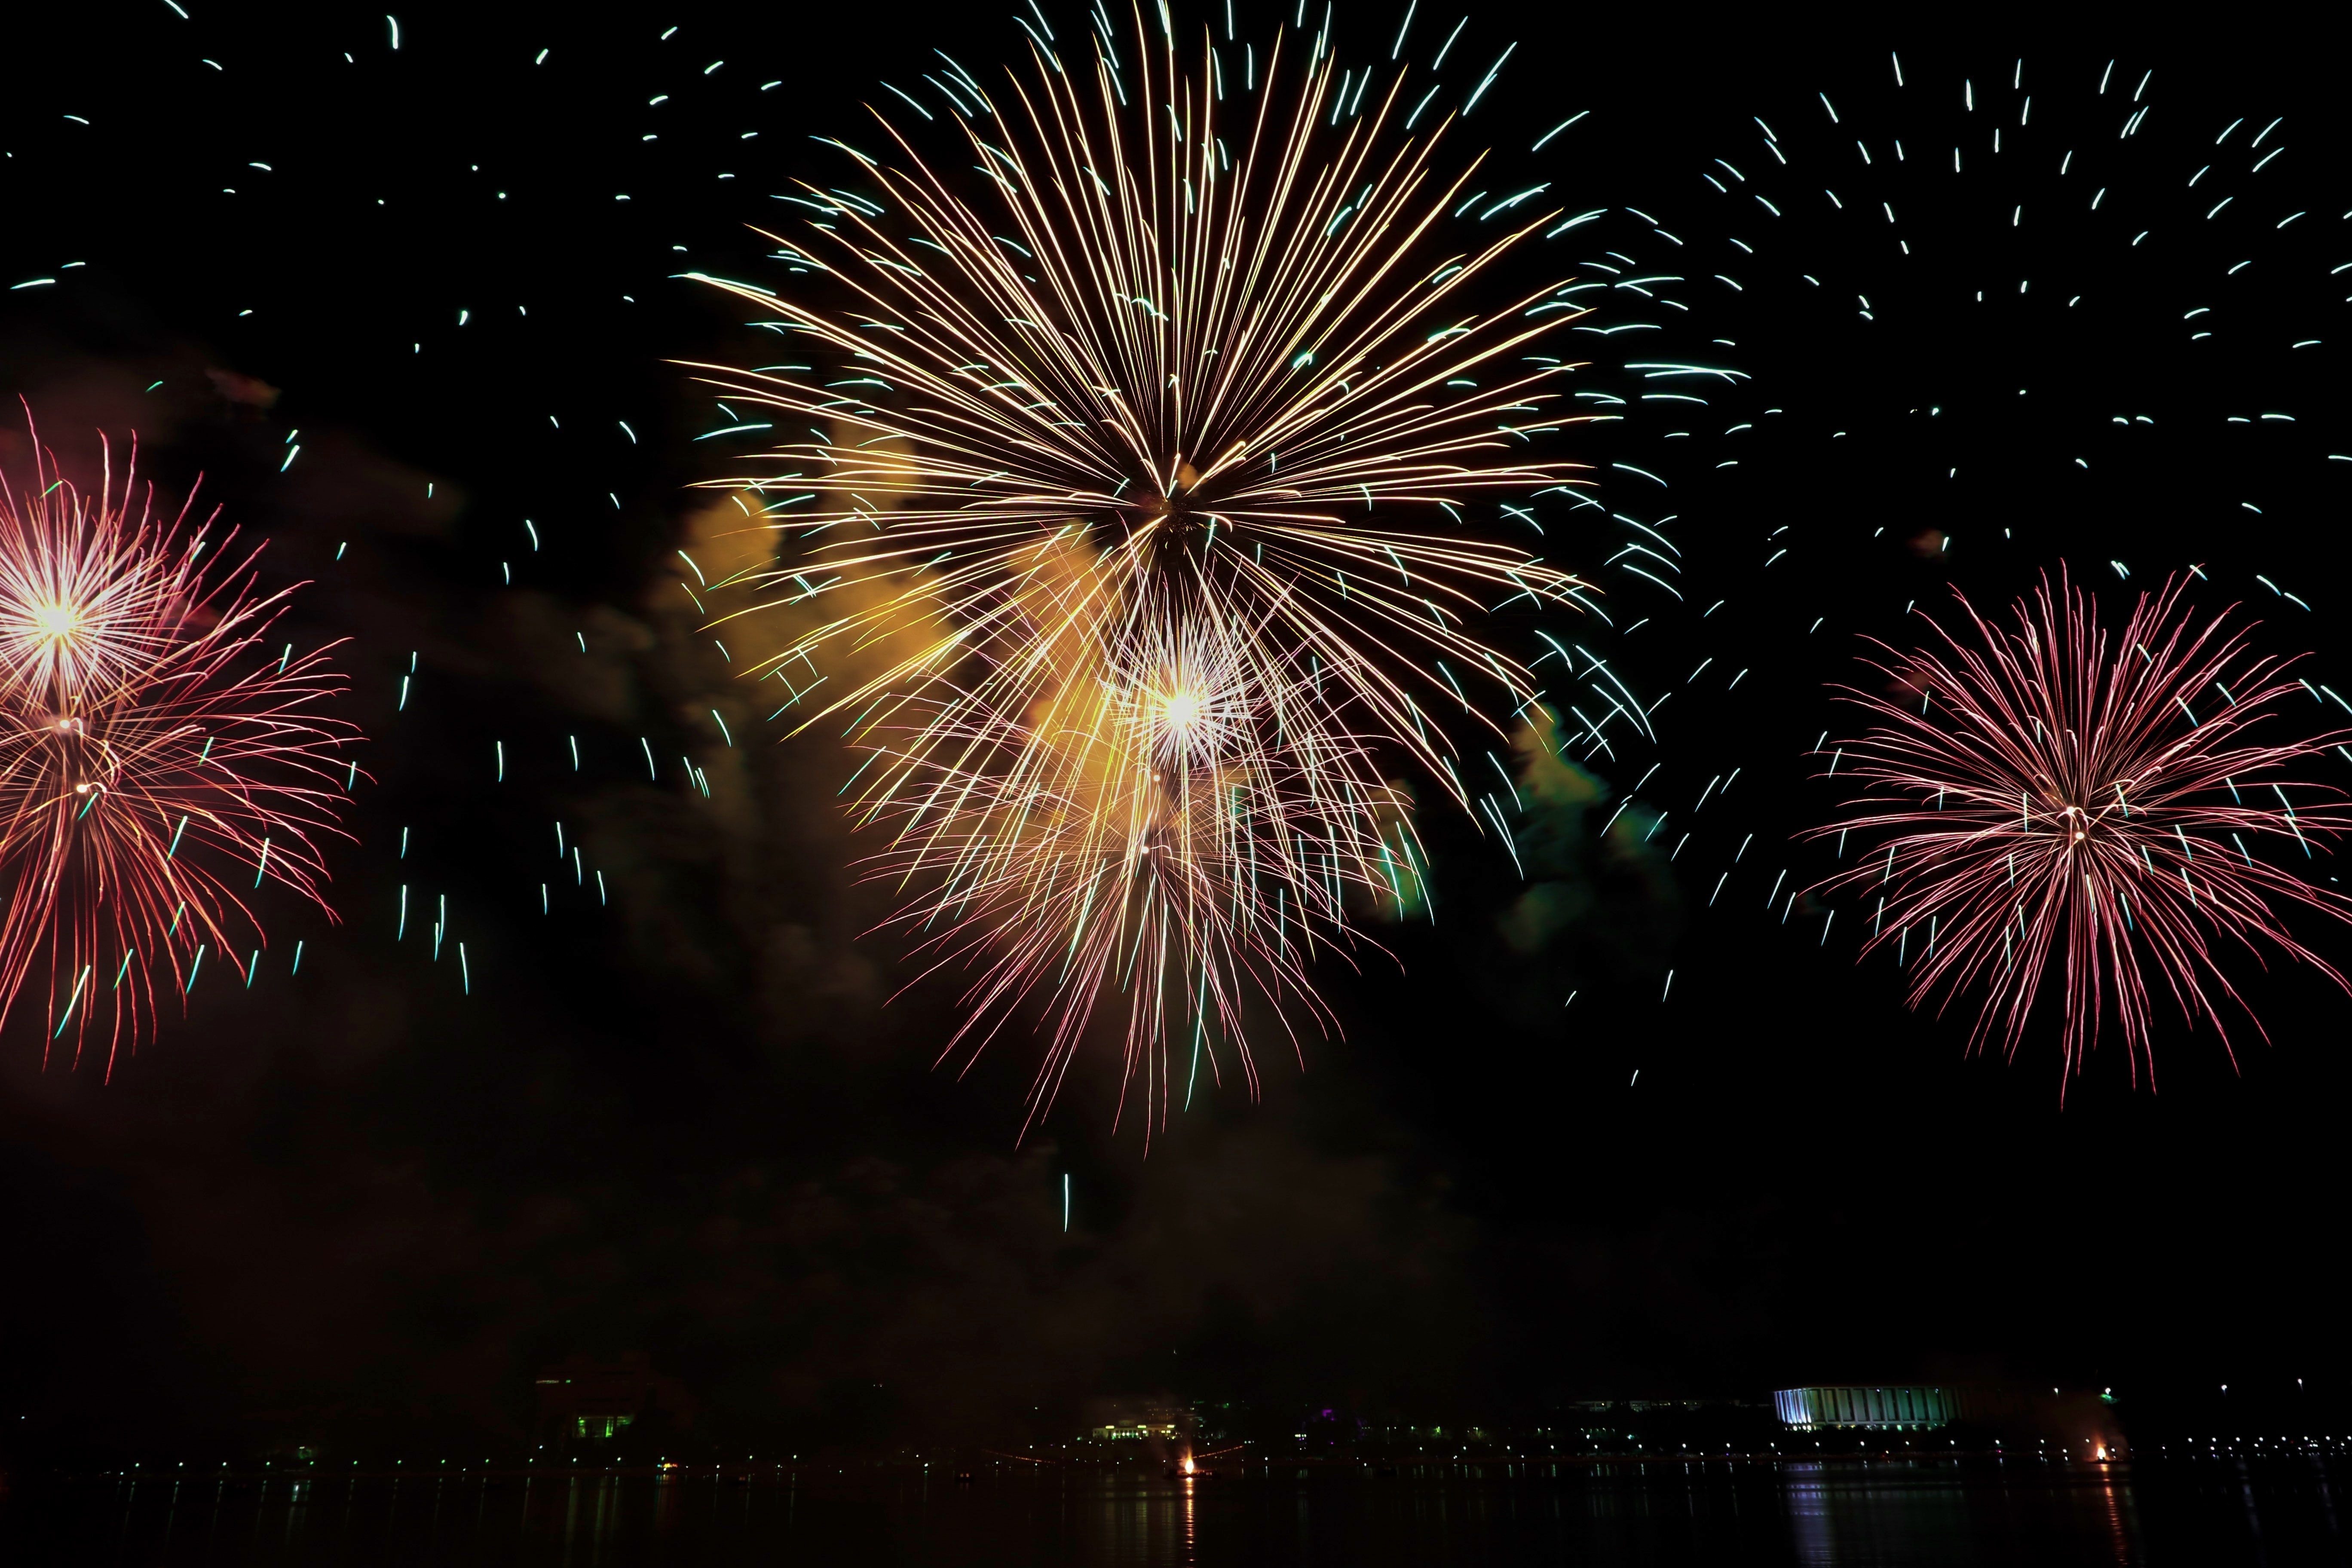 yellow and pink fireworks display in sky